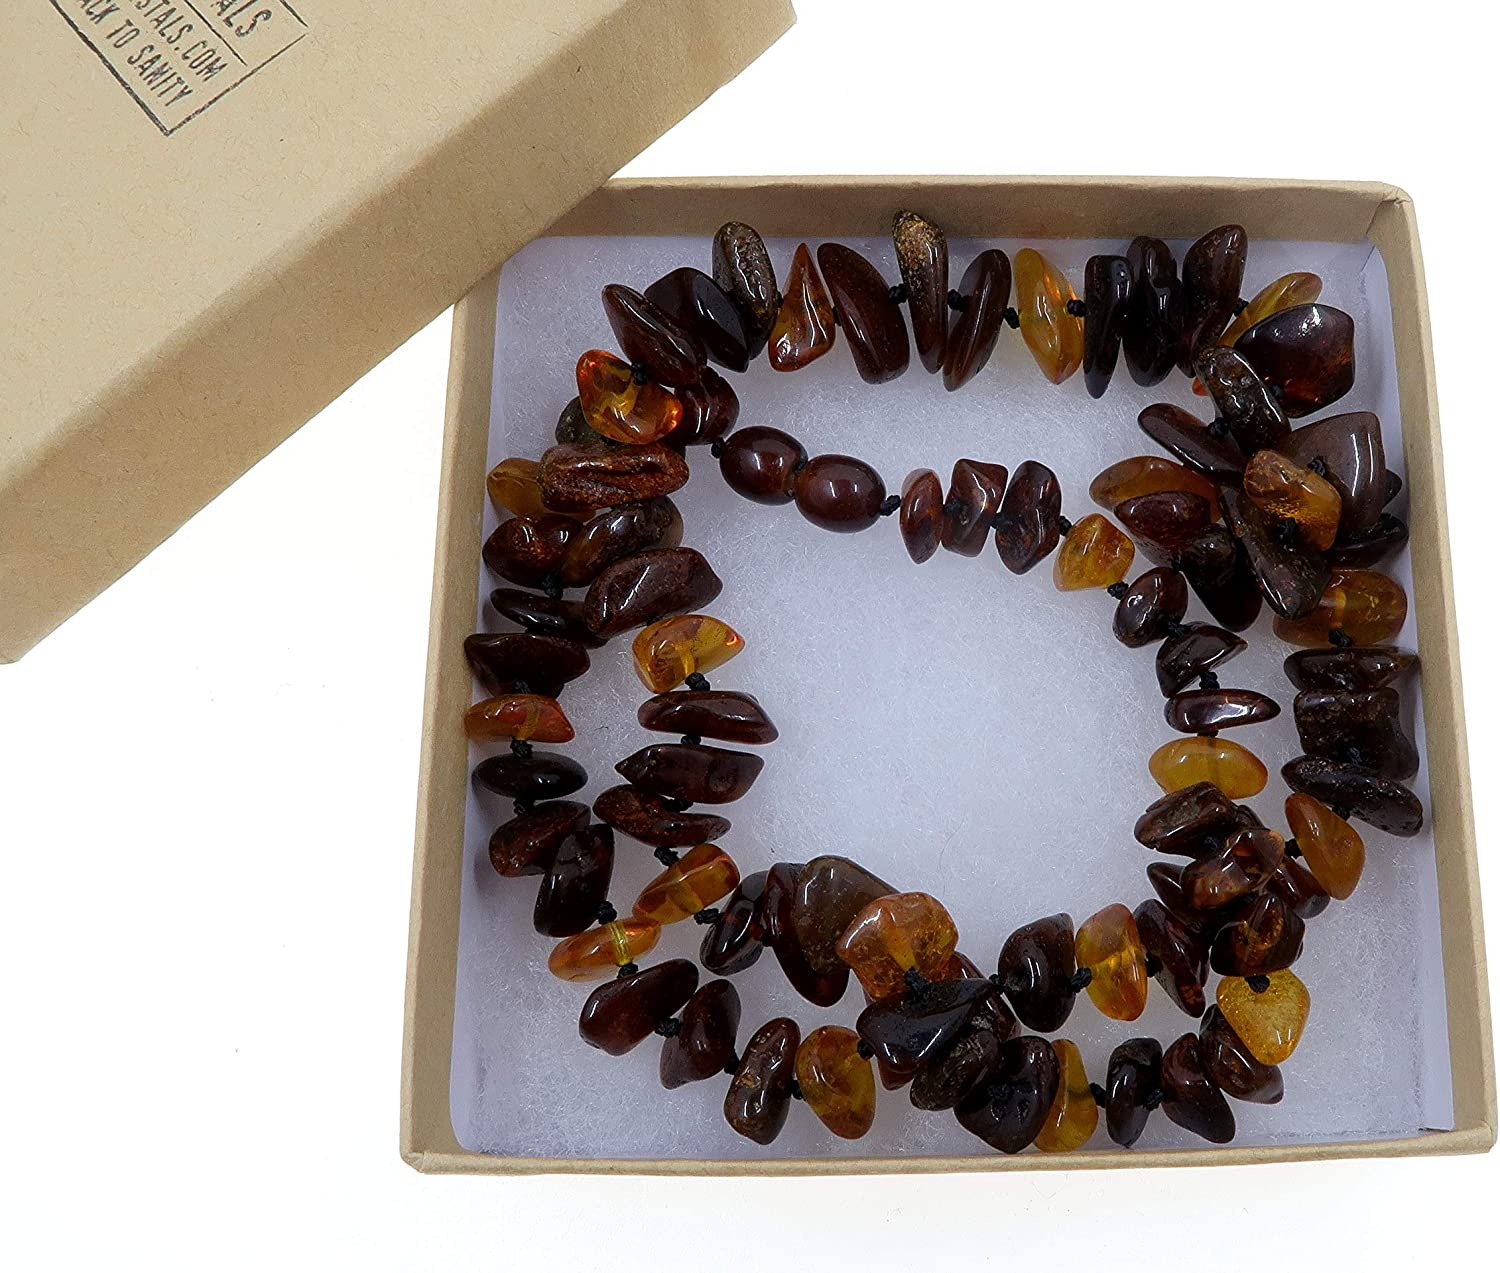 20 Amber Necklace Boutique Multi-Color Yellow Red Orange Black Knotted Genuine Baltic Gemstone B06